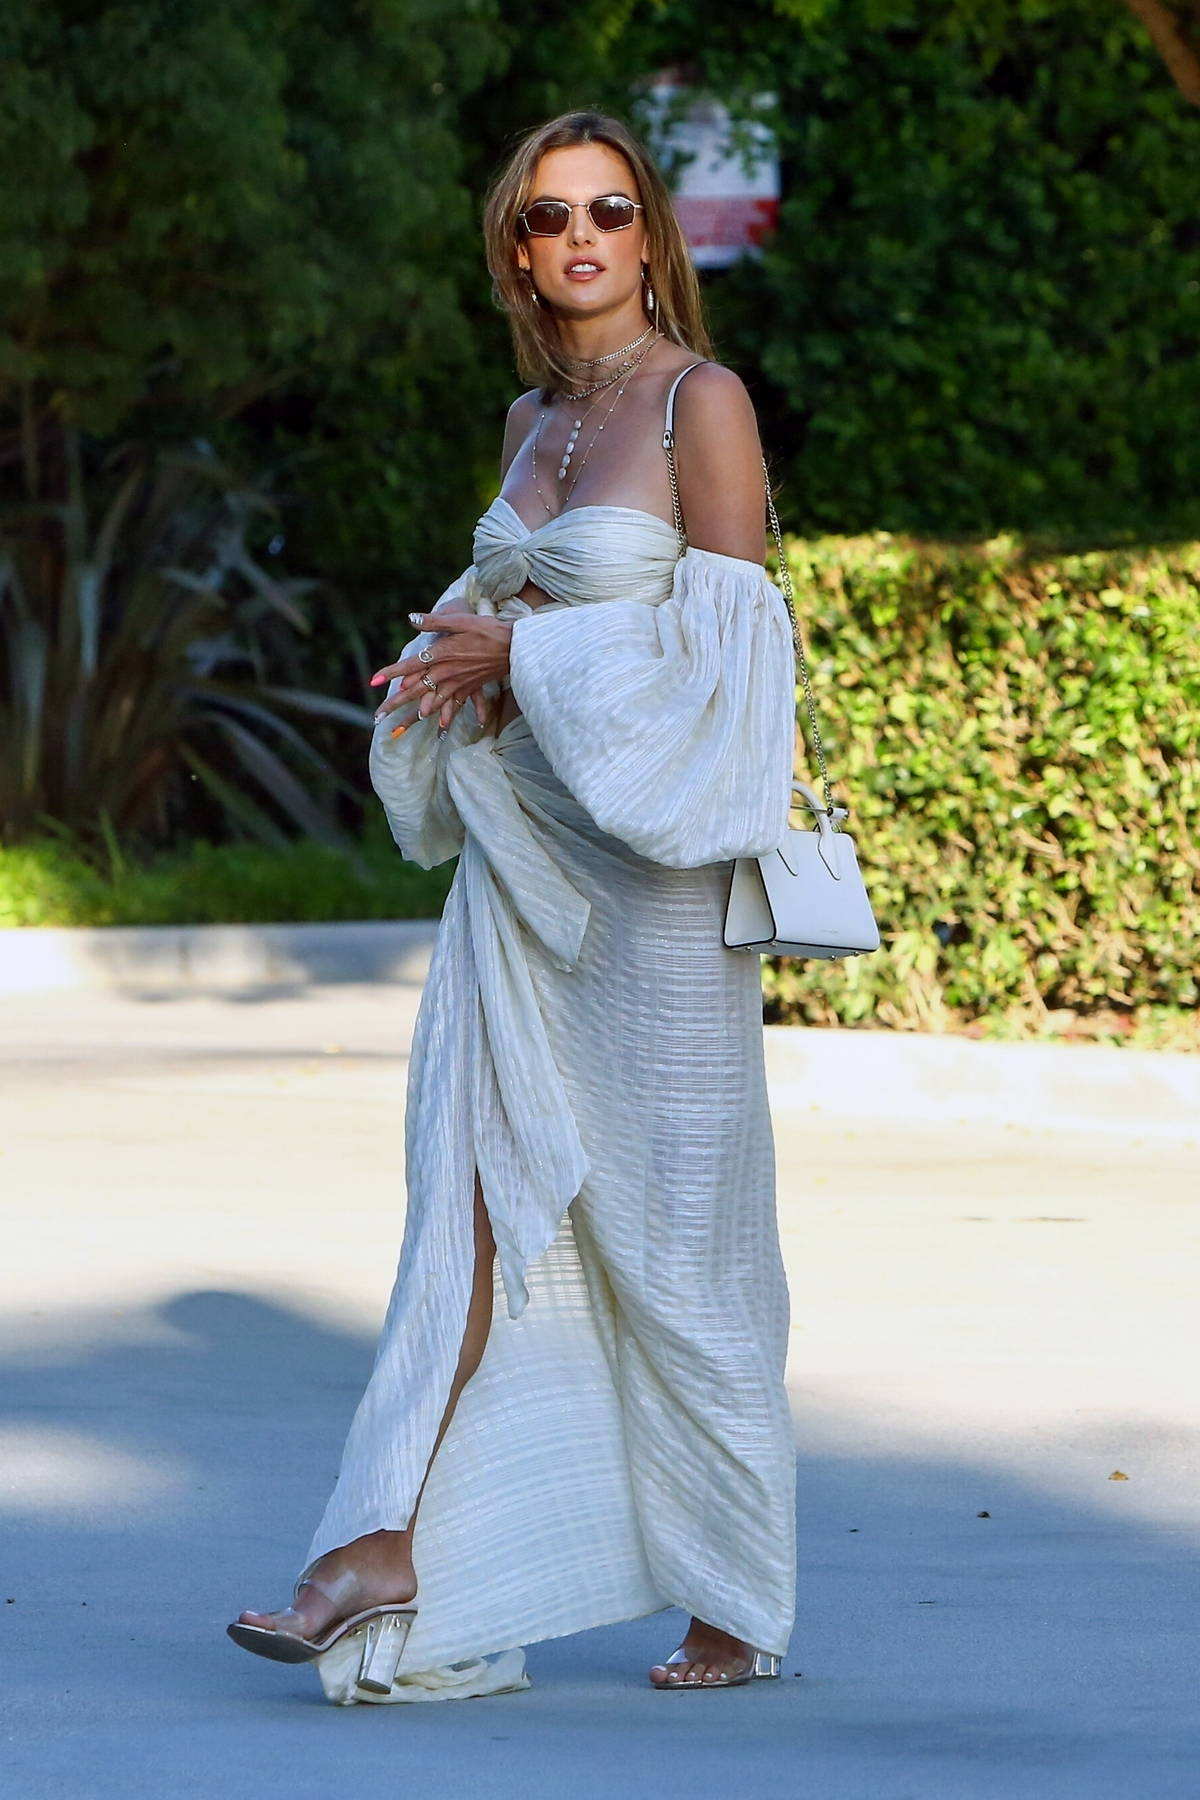 Alessandra Ambrosio looks elegant in an off-the-shoulder white dress while heading out for a party in Malibu, California